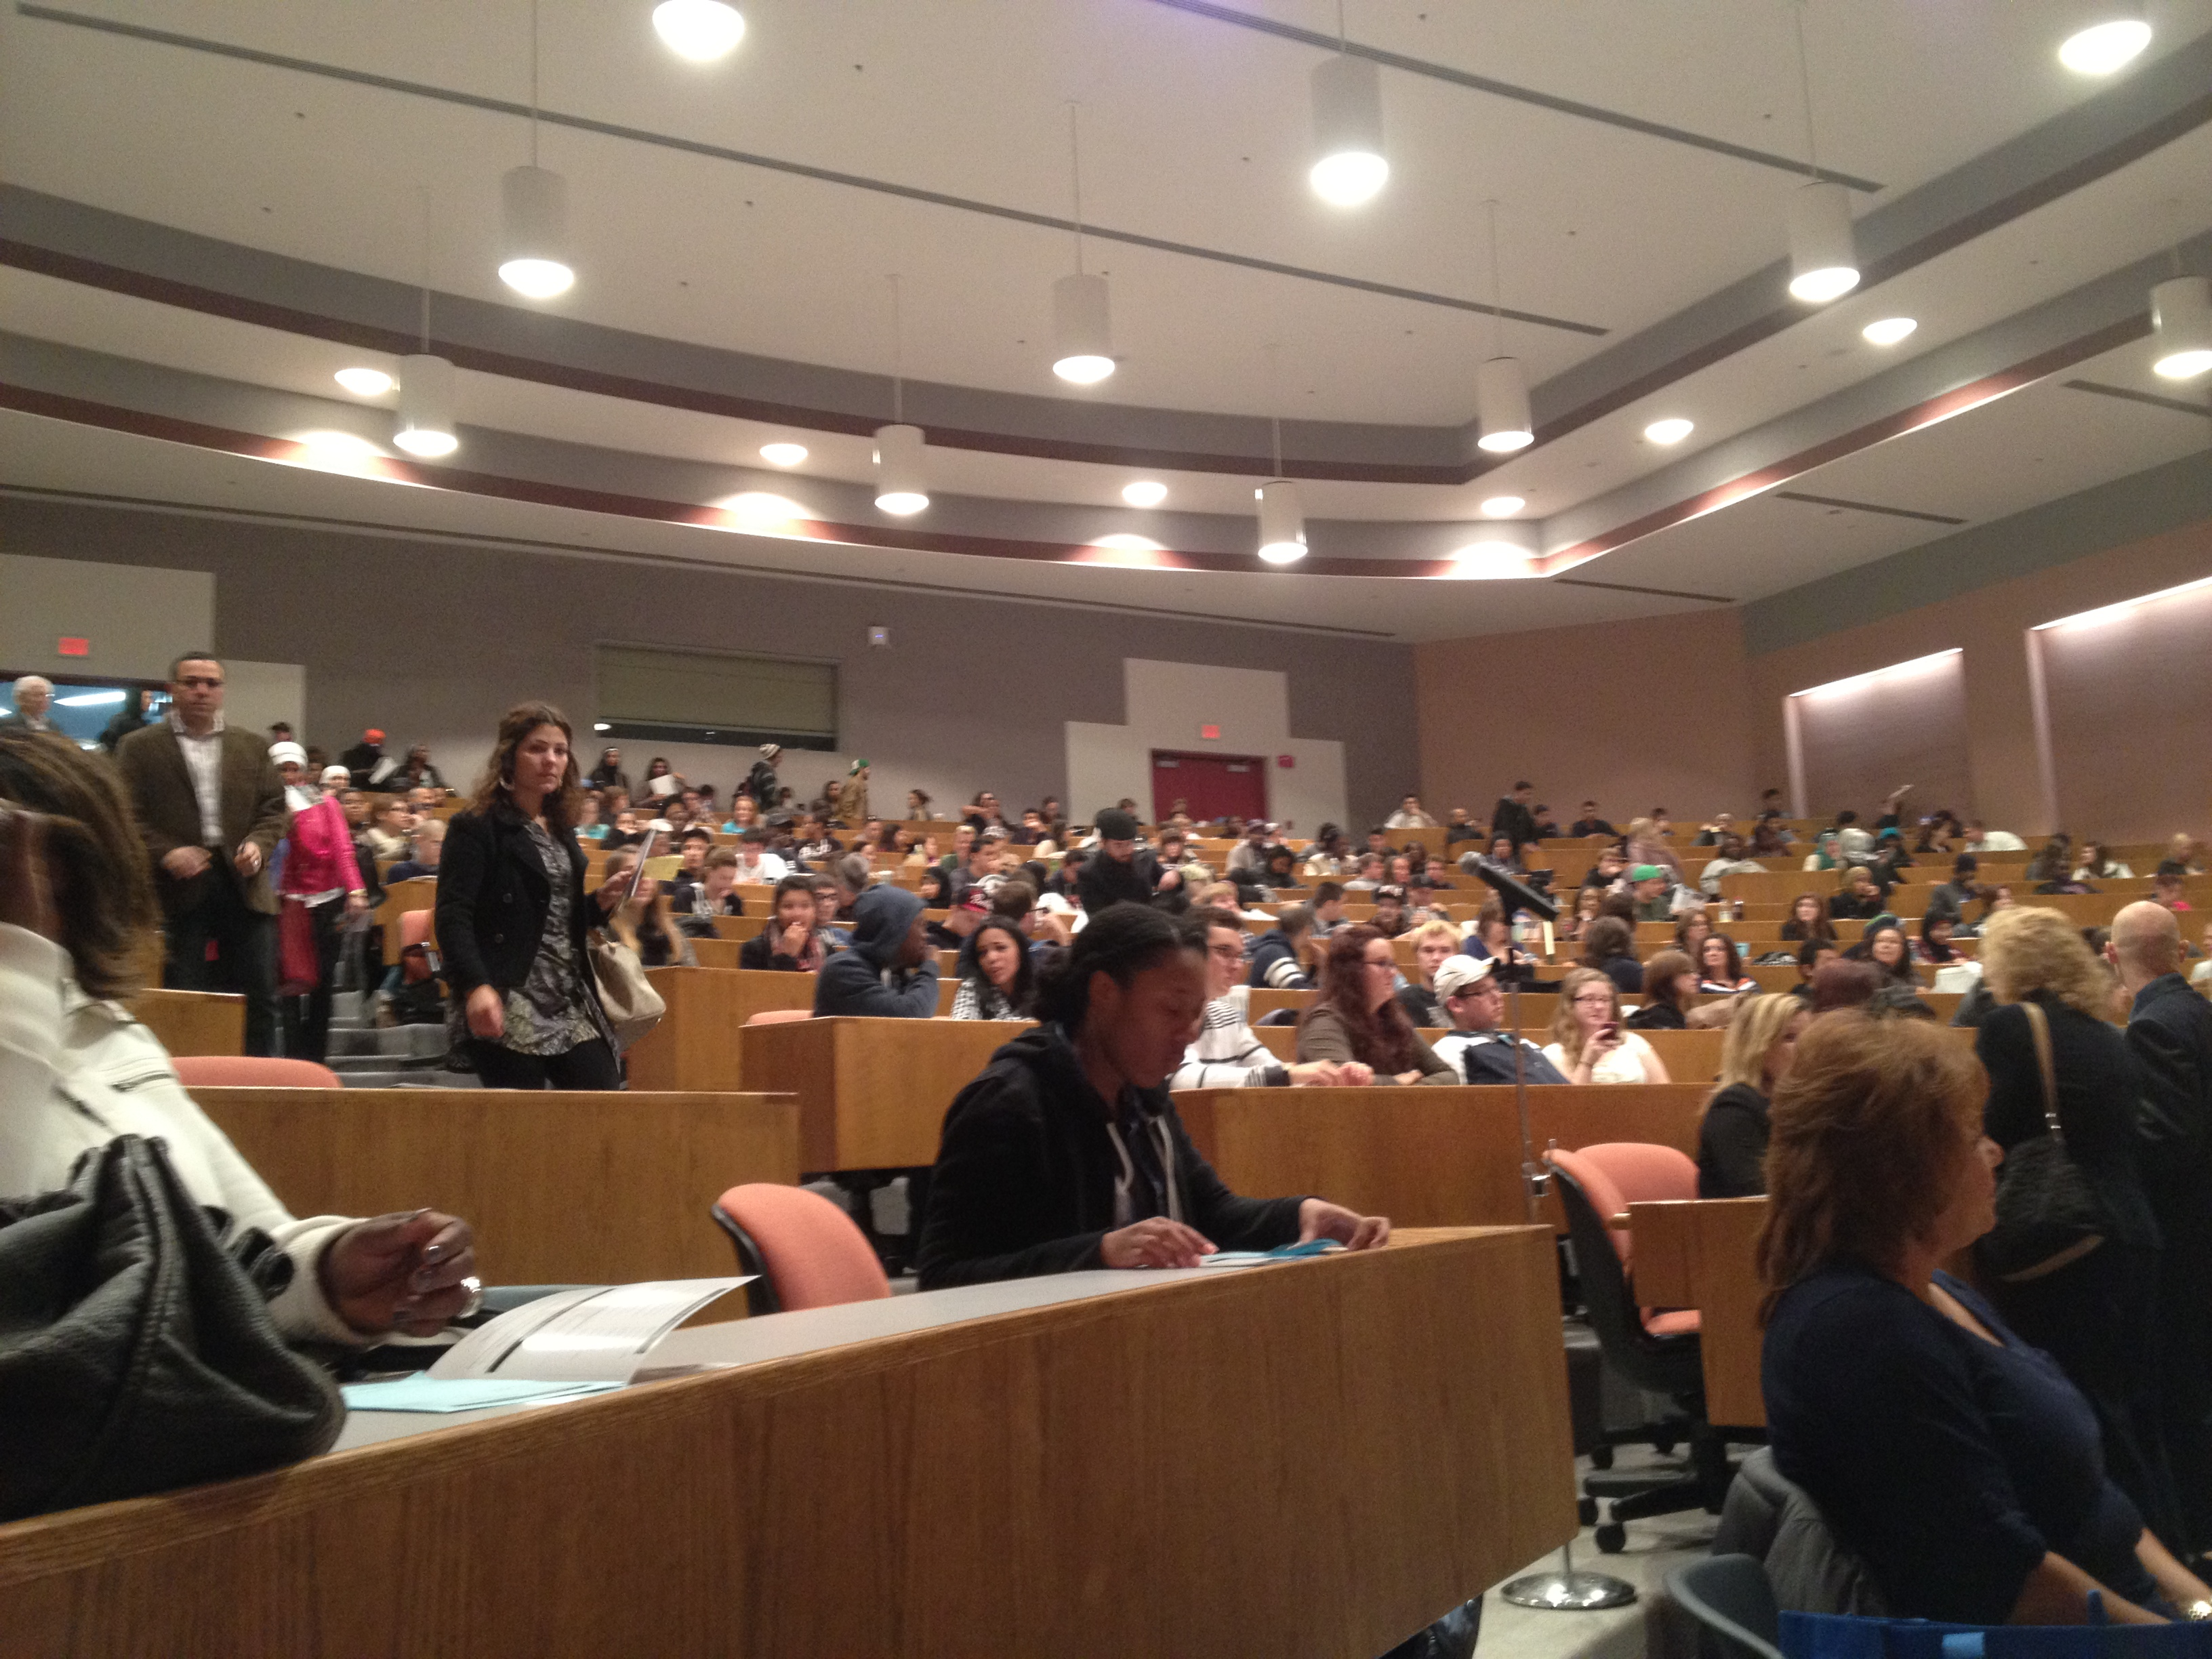 michigan student convention at henry ford community college   the